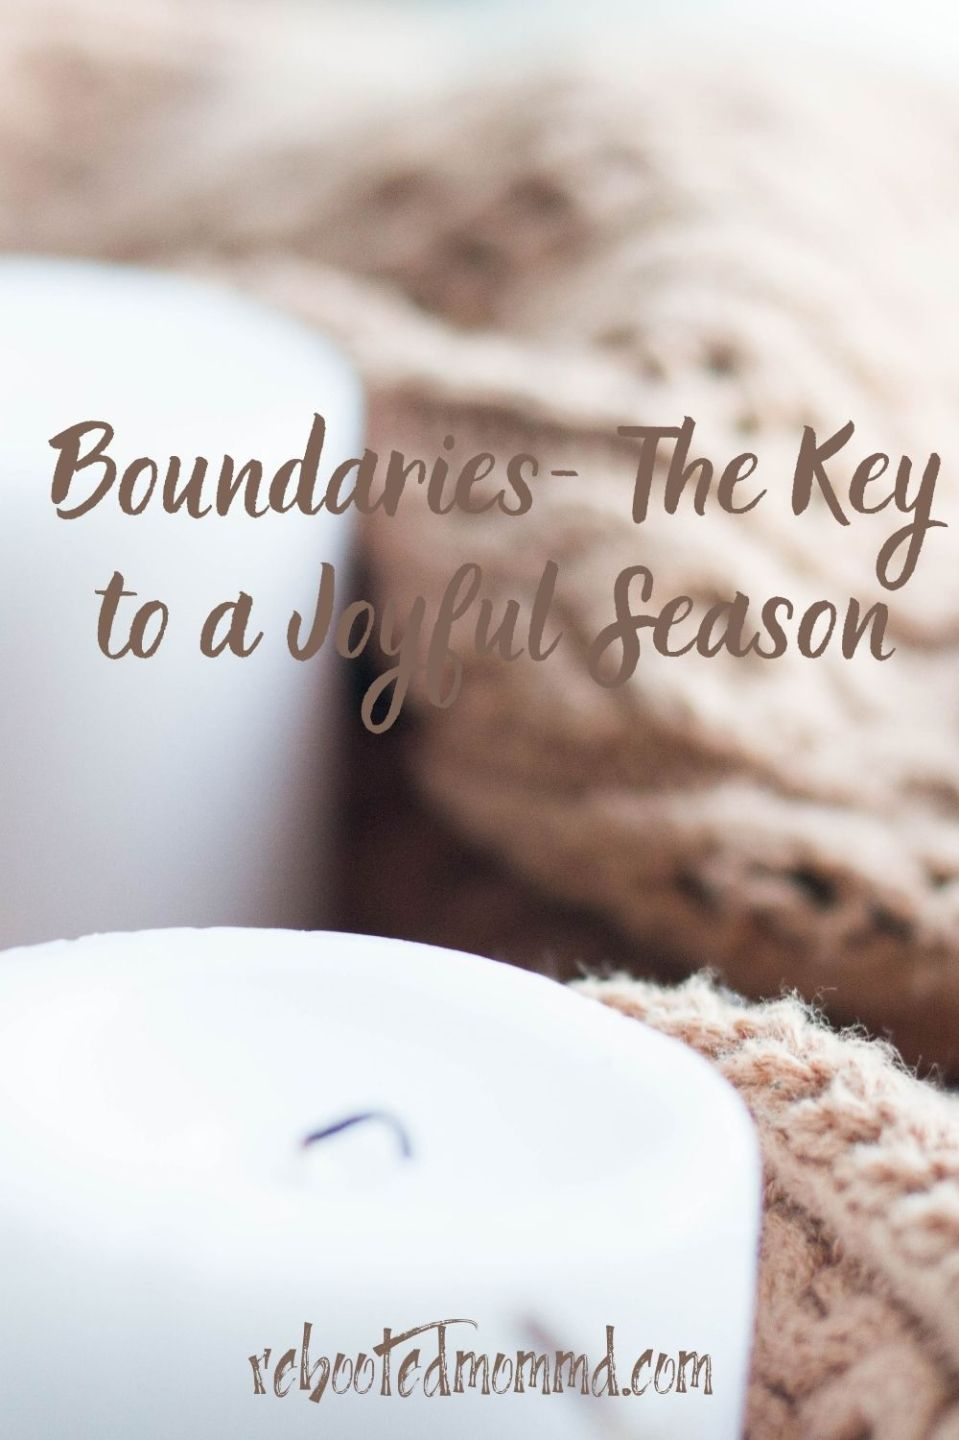 Boundaries- The Key to a Joyful Season